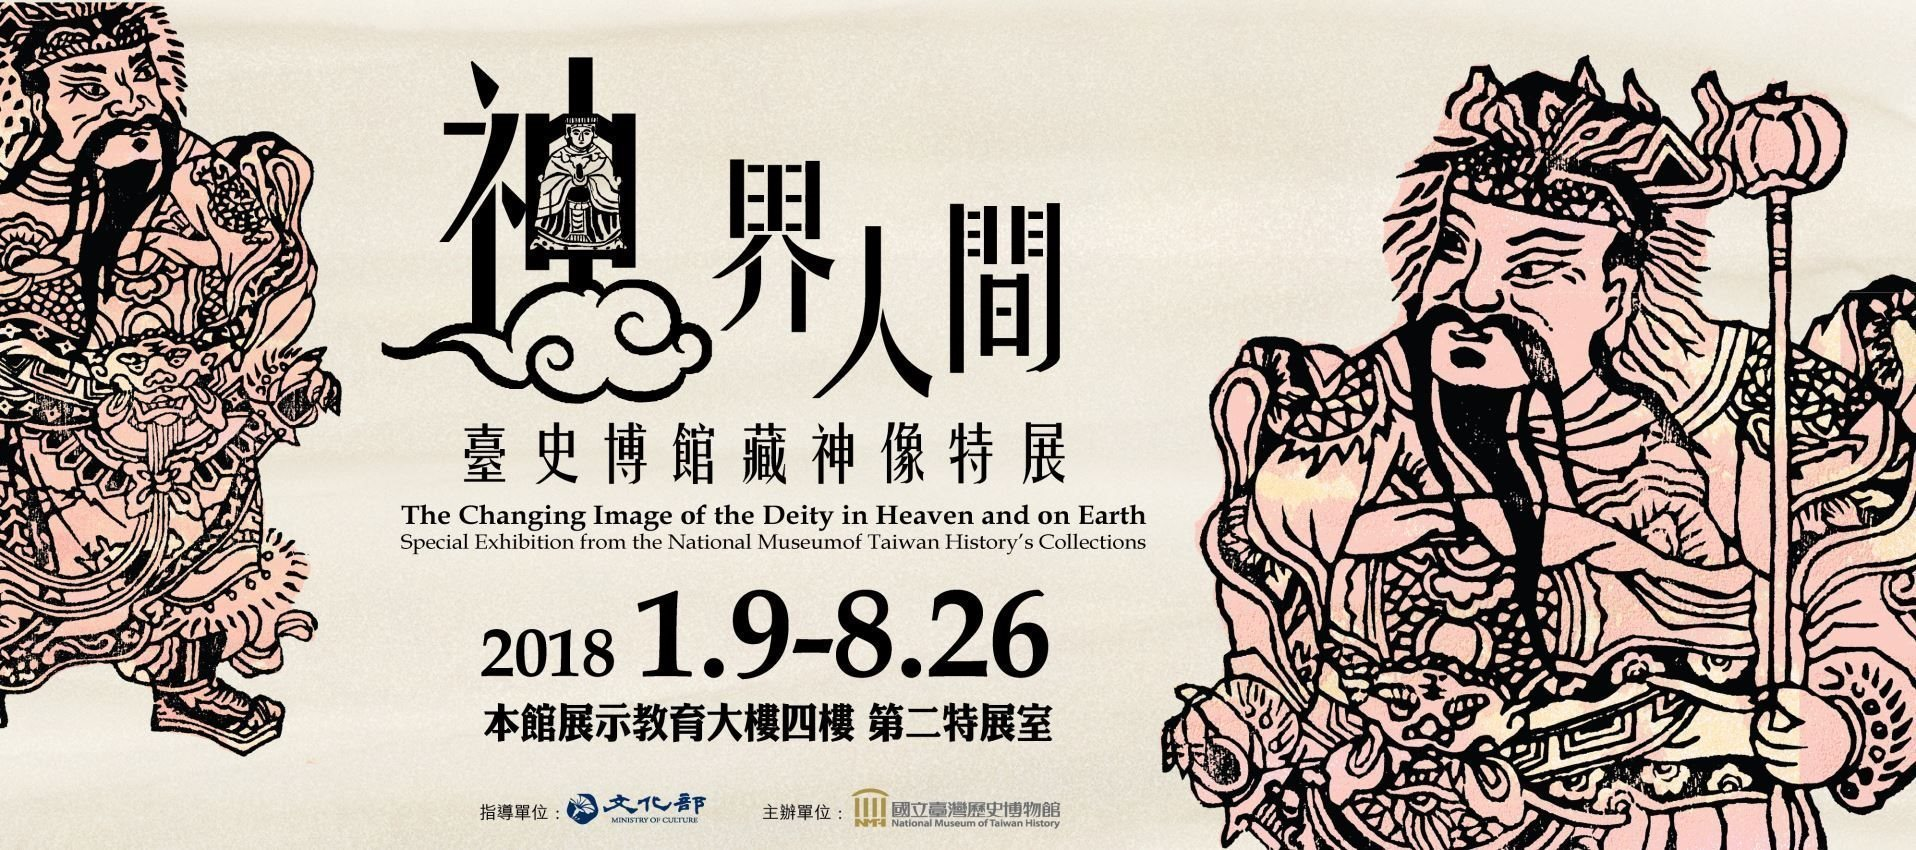 The Changing Image of the Deity in Heaven and on Earth[另開新視窗]